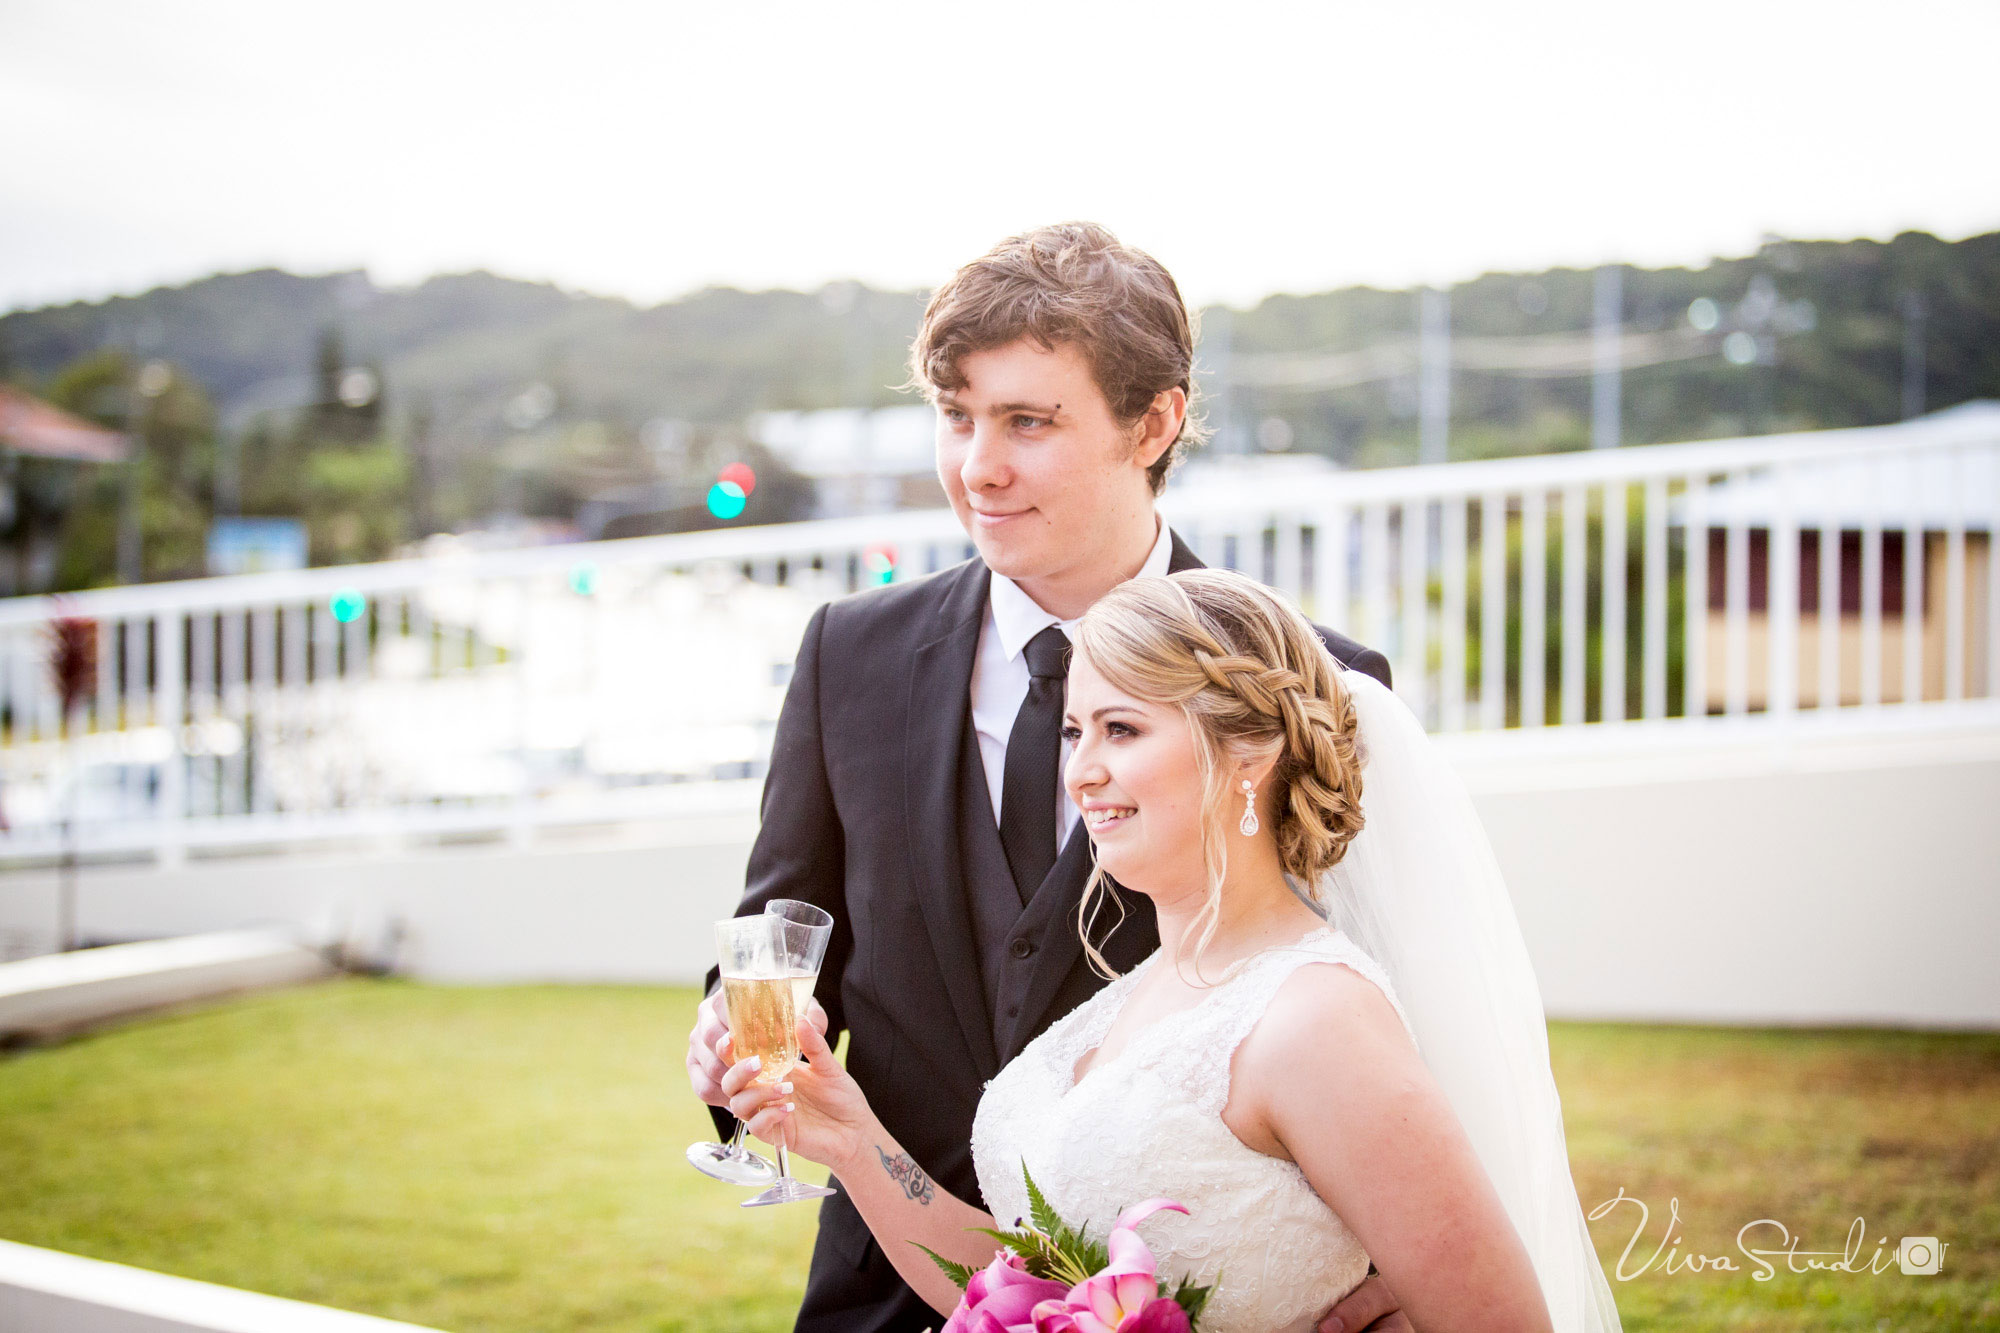 VivaStudio_Wedding_Photography_Portrait_Brisbane_Gold_Coast09